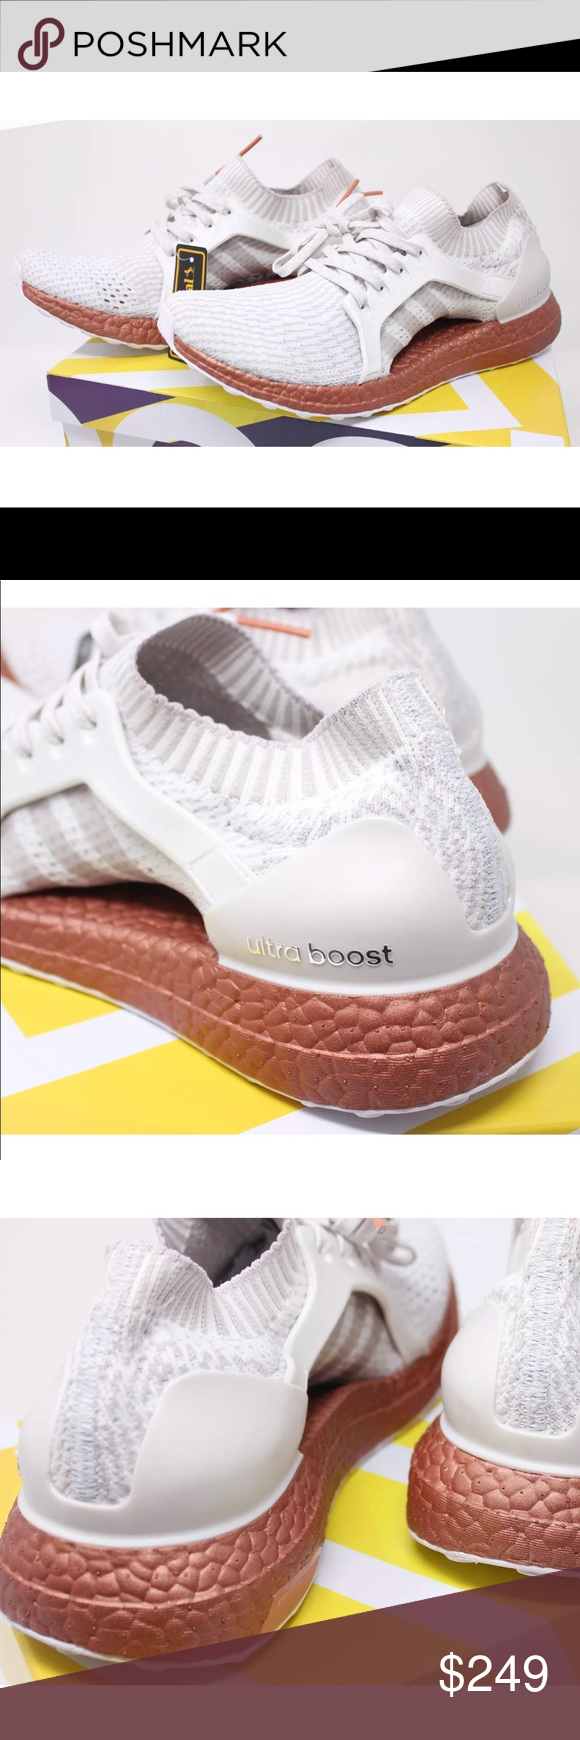 820a5d9f0 ADIDAS ULTRABOOST x LTD Rare White Ice Purple Rust ADIDAS Womens ULTRABOOST  x LTD Rare Crystal